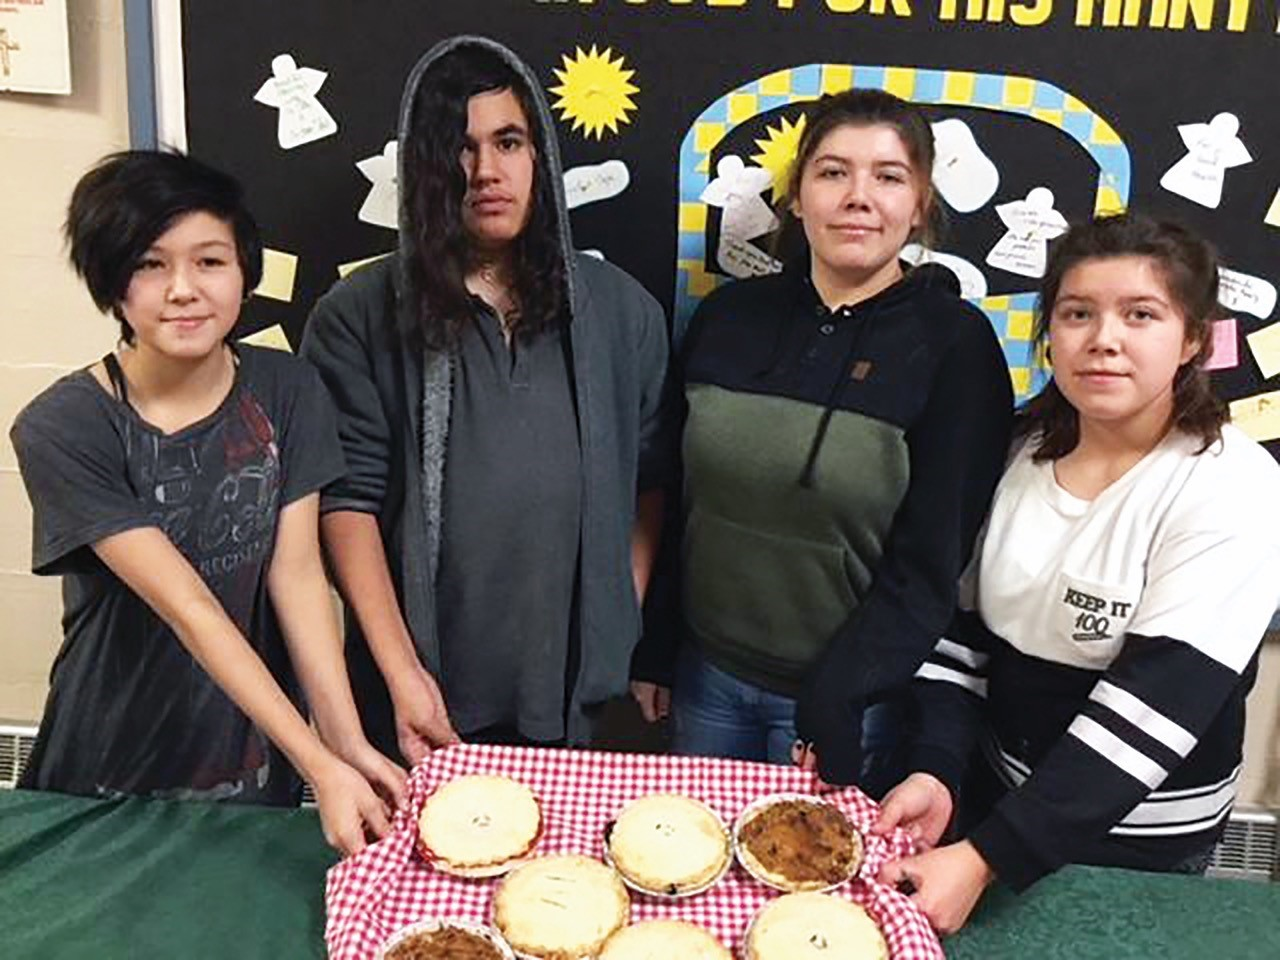 Youth Group members from Holy Trinity Church in Cochrane, Ont., sell their monster cookies.